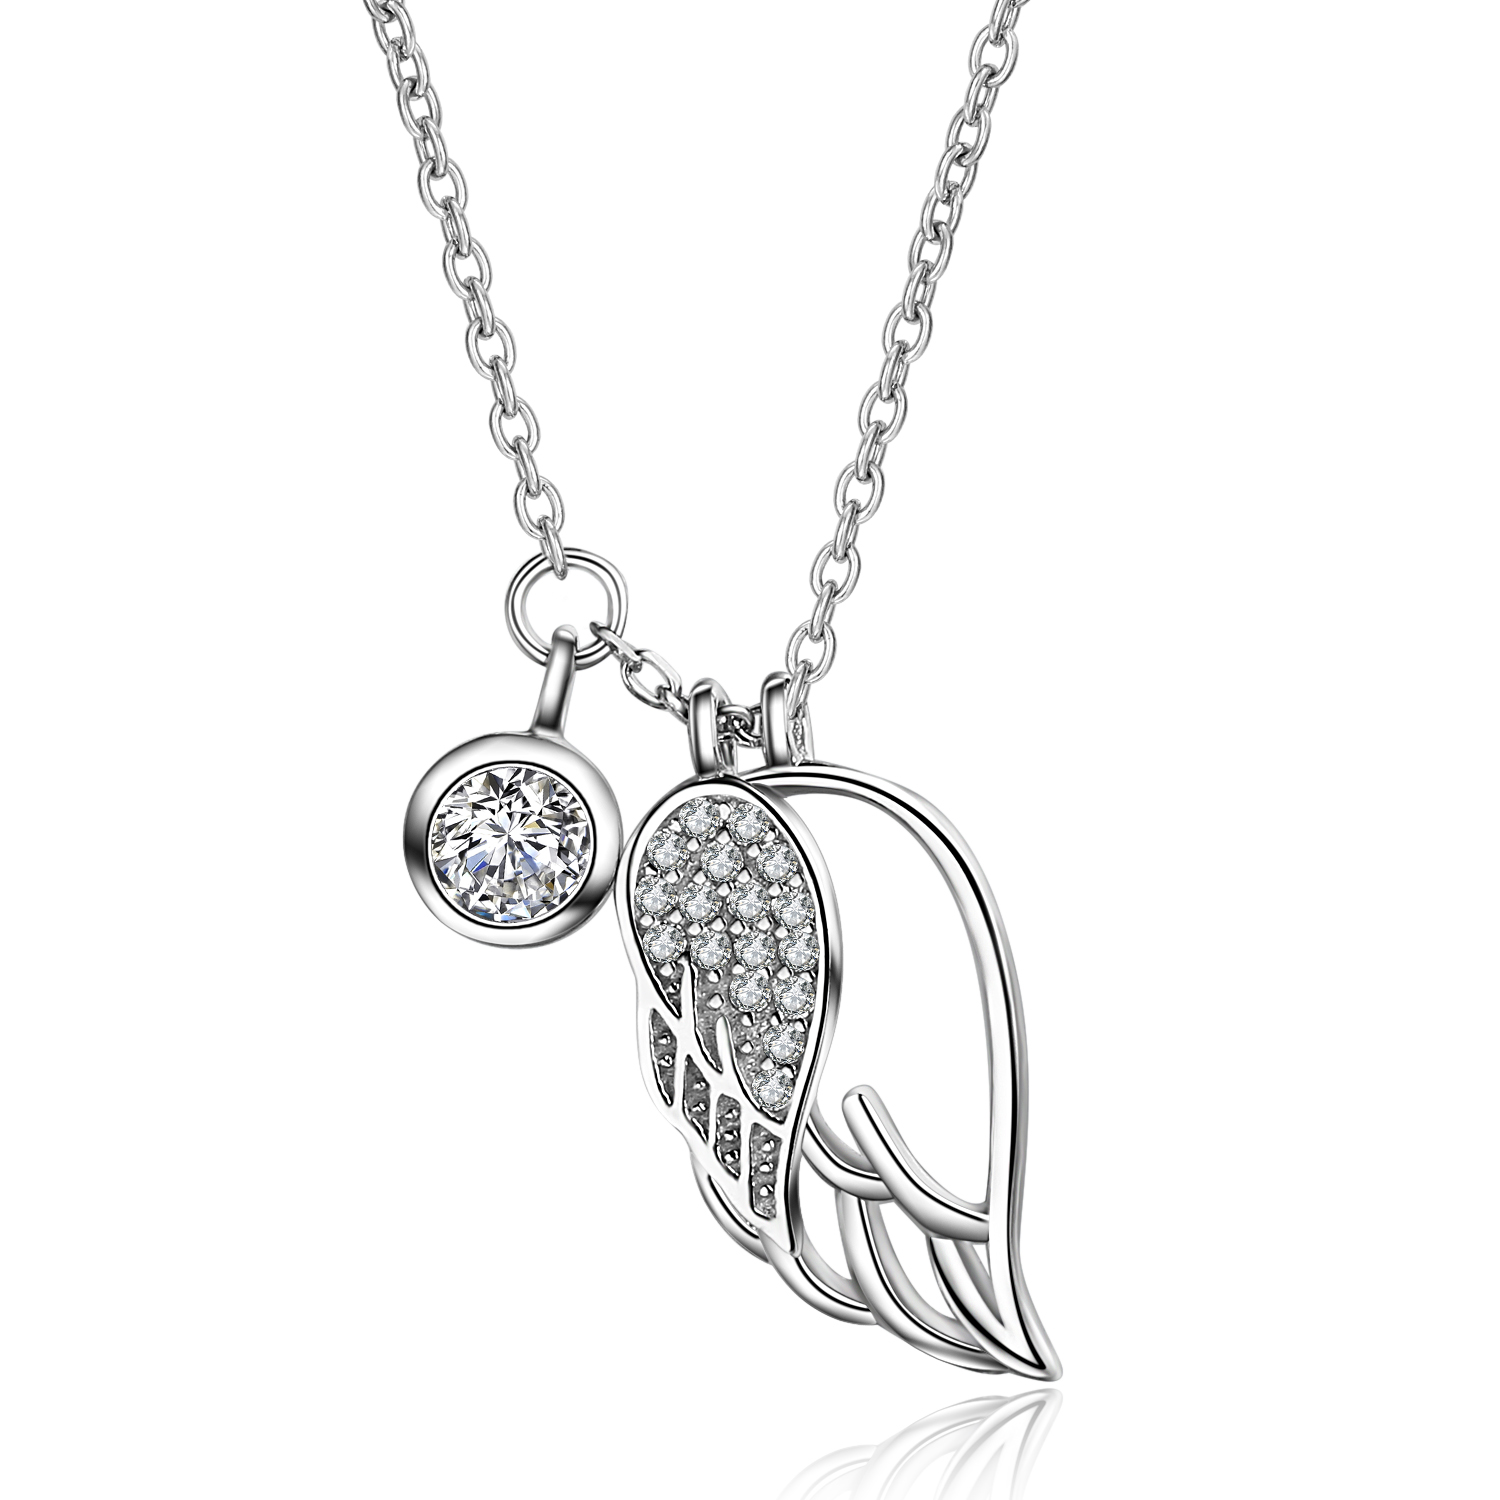 Fashionable 925 sterling silver white gold plating Wing charm necklace